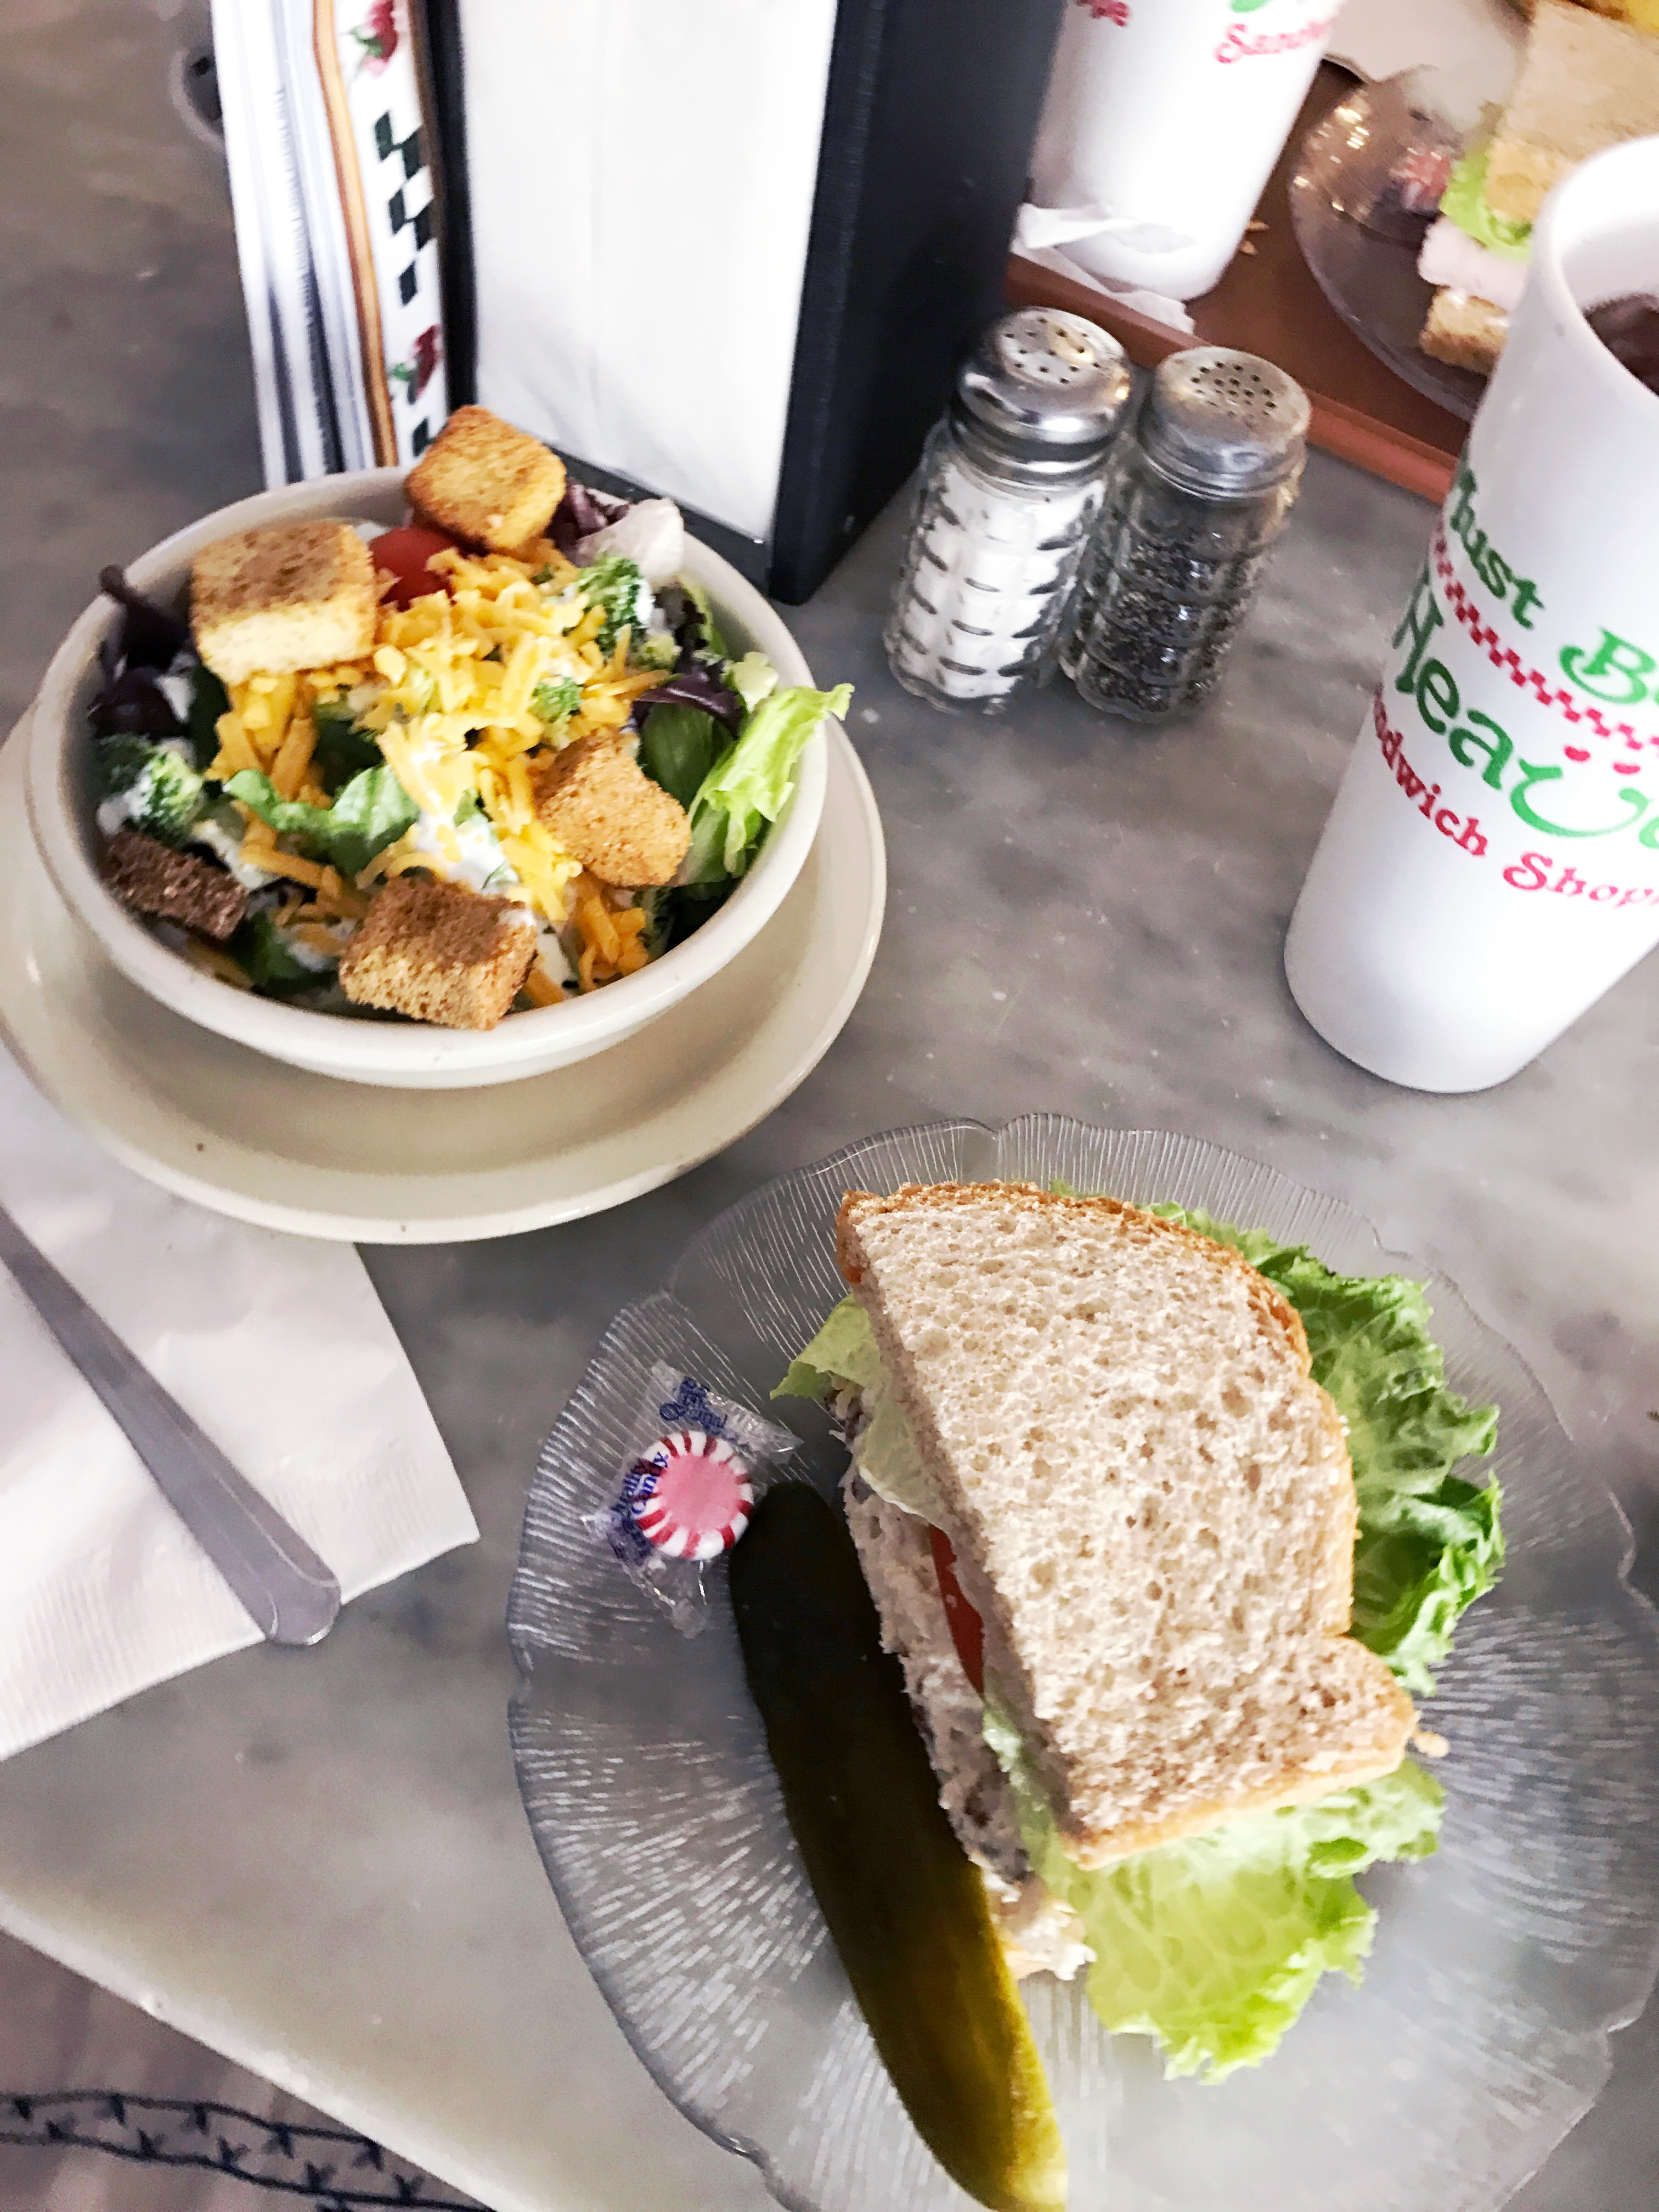 A day trip to Brenham, TX: where to eat, what to see and what to do.